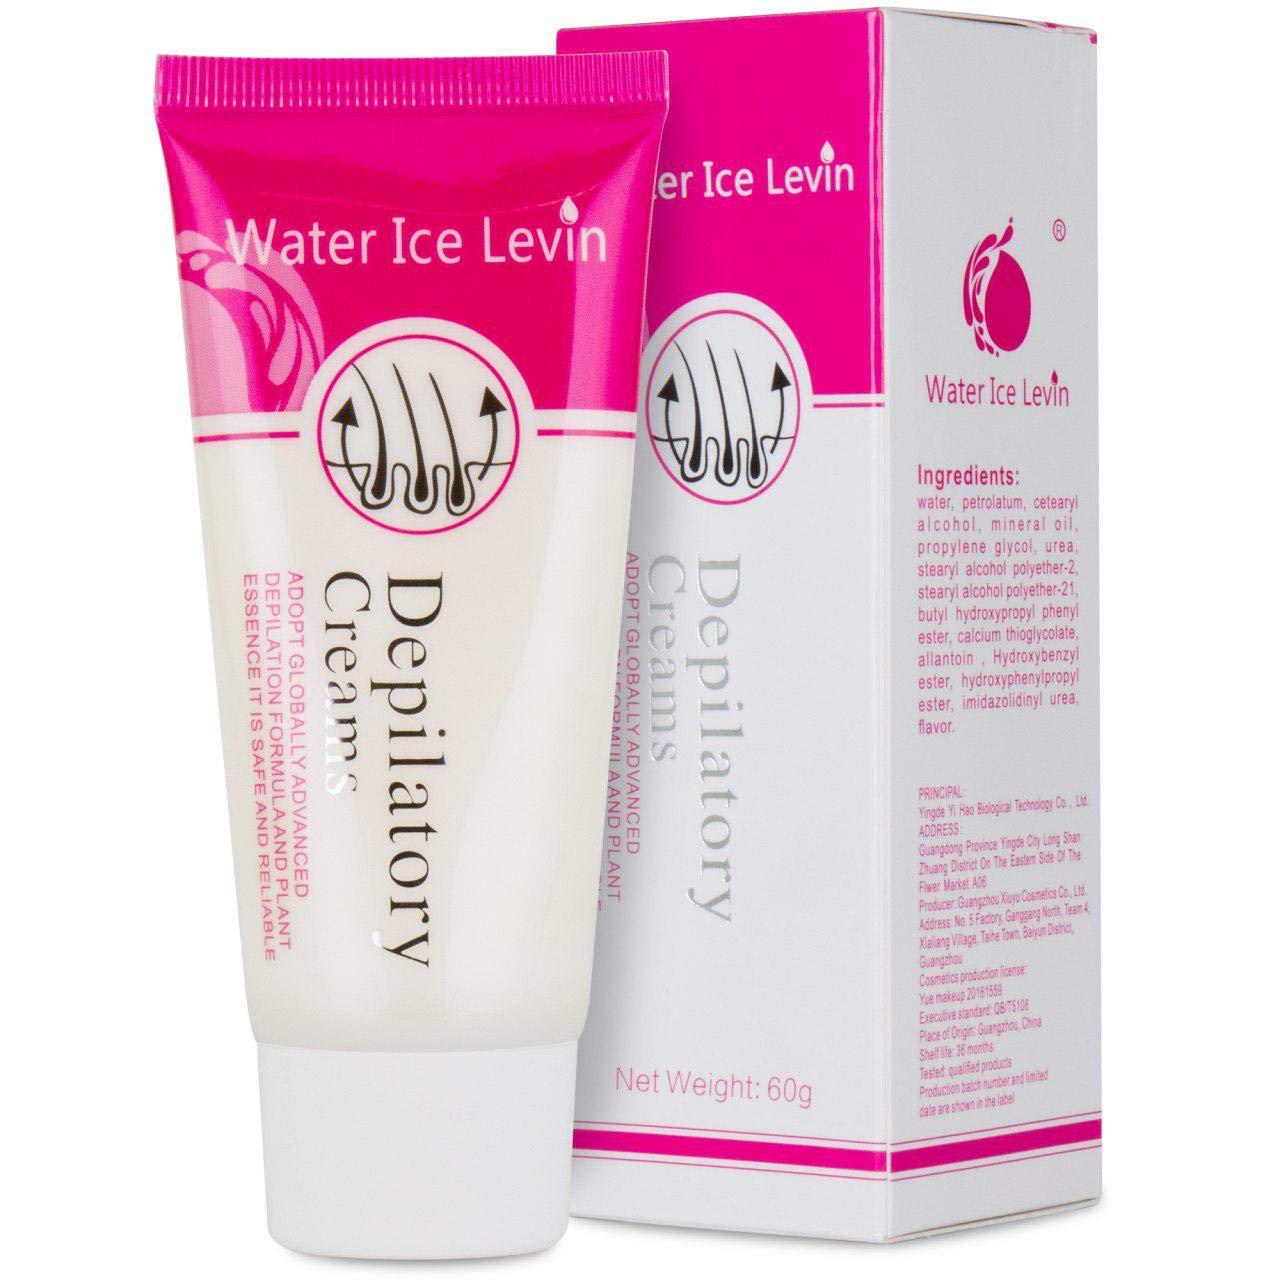 Avashine Hair Removal Cream - The Best Facial Hair Removal Cream For Men And Women